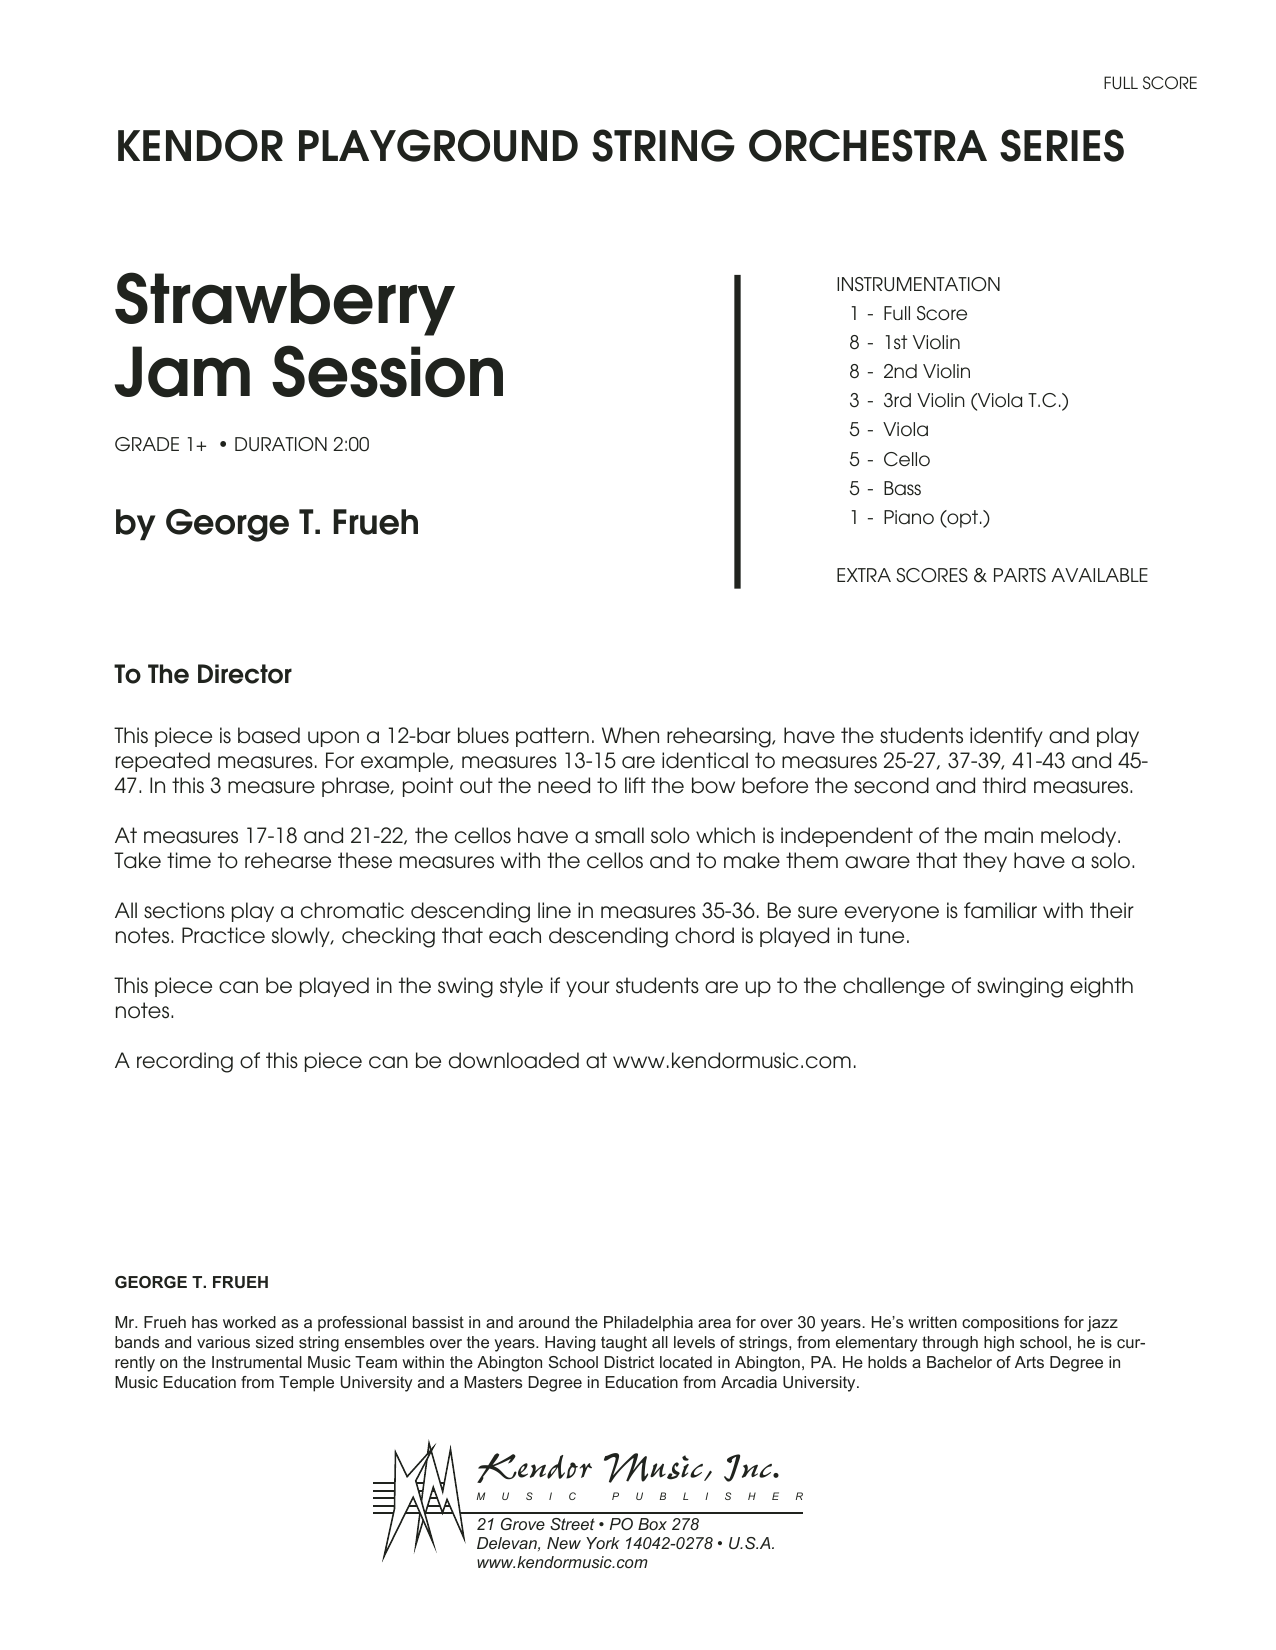 Strawberry Jam Session Orchestra Music Download